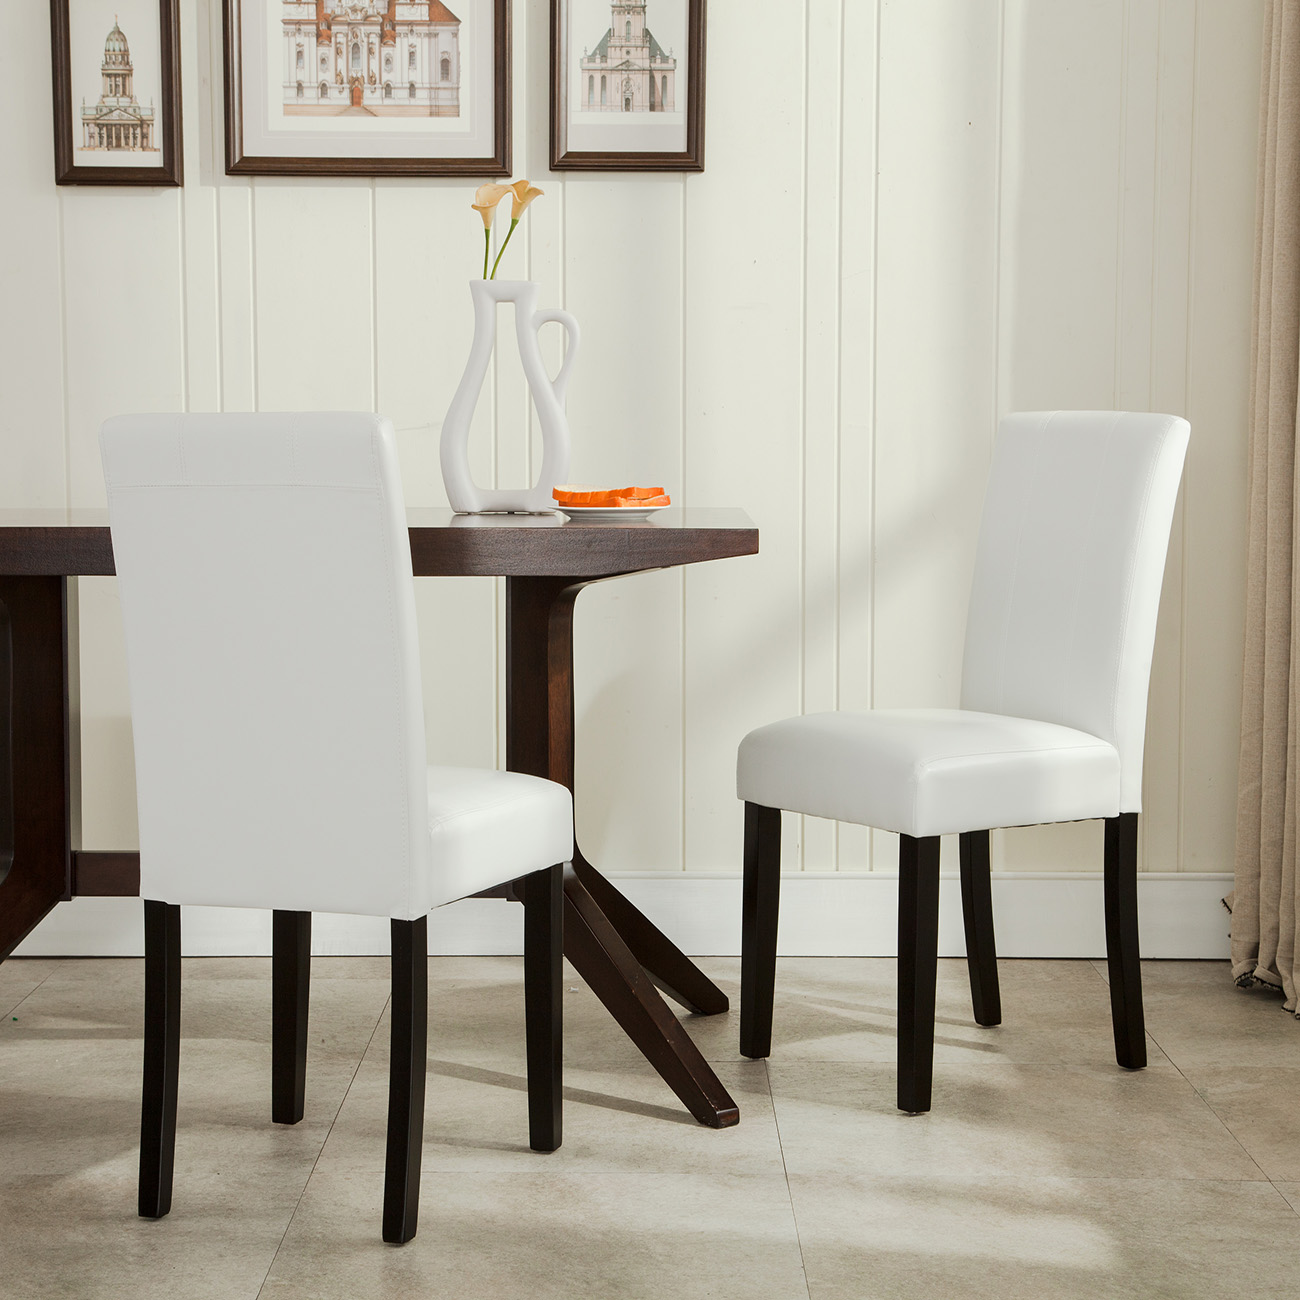 Contemporary Dining Room Chairs: Elegant Modern Parsons Chair Leather Dining Living Room